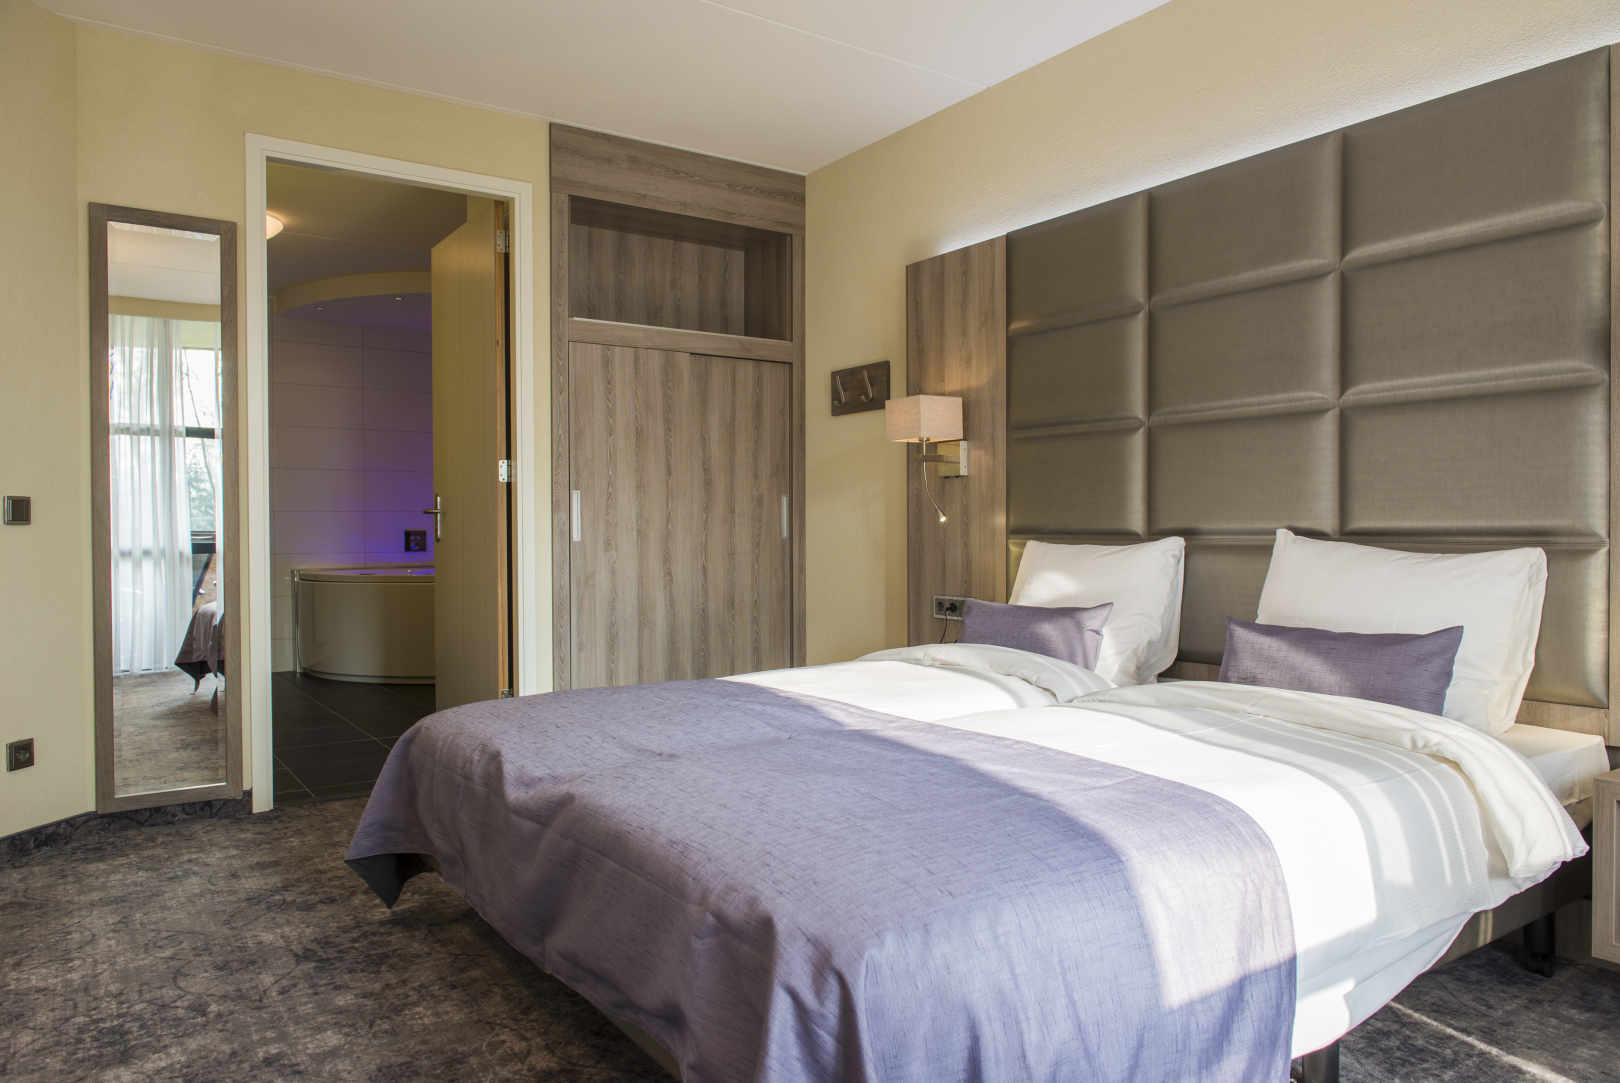 Accommodation and offers